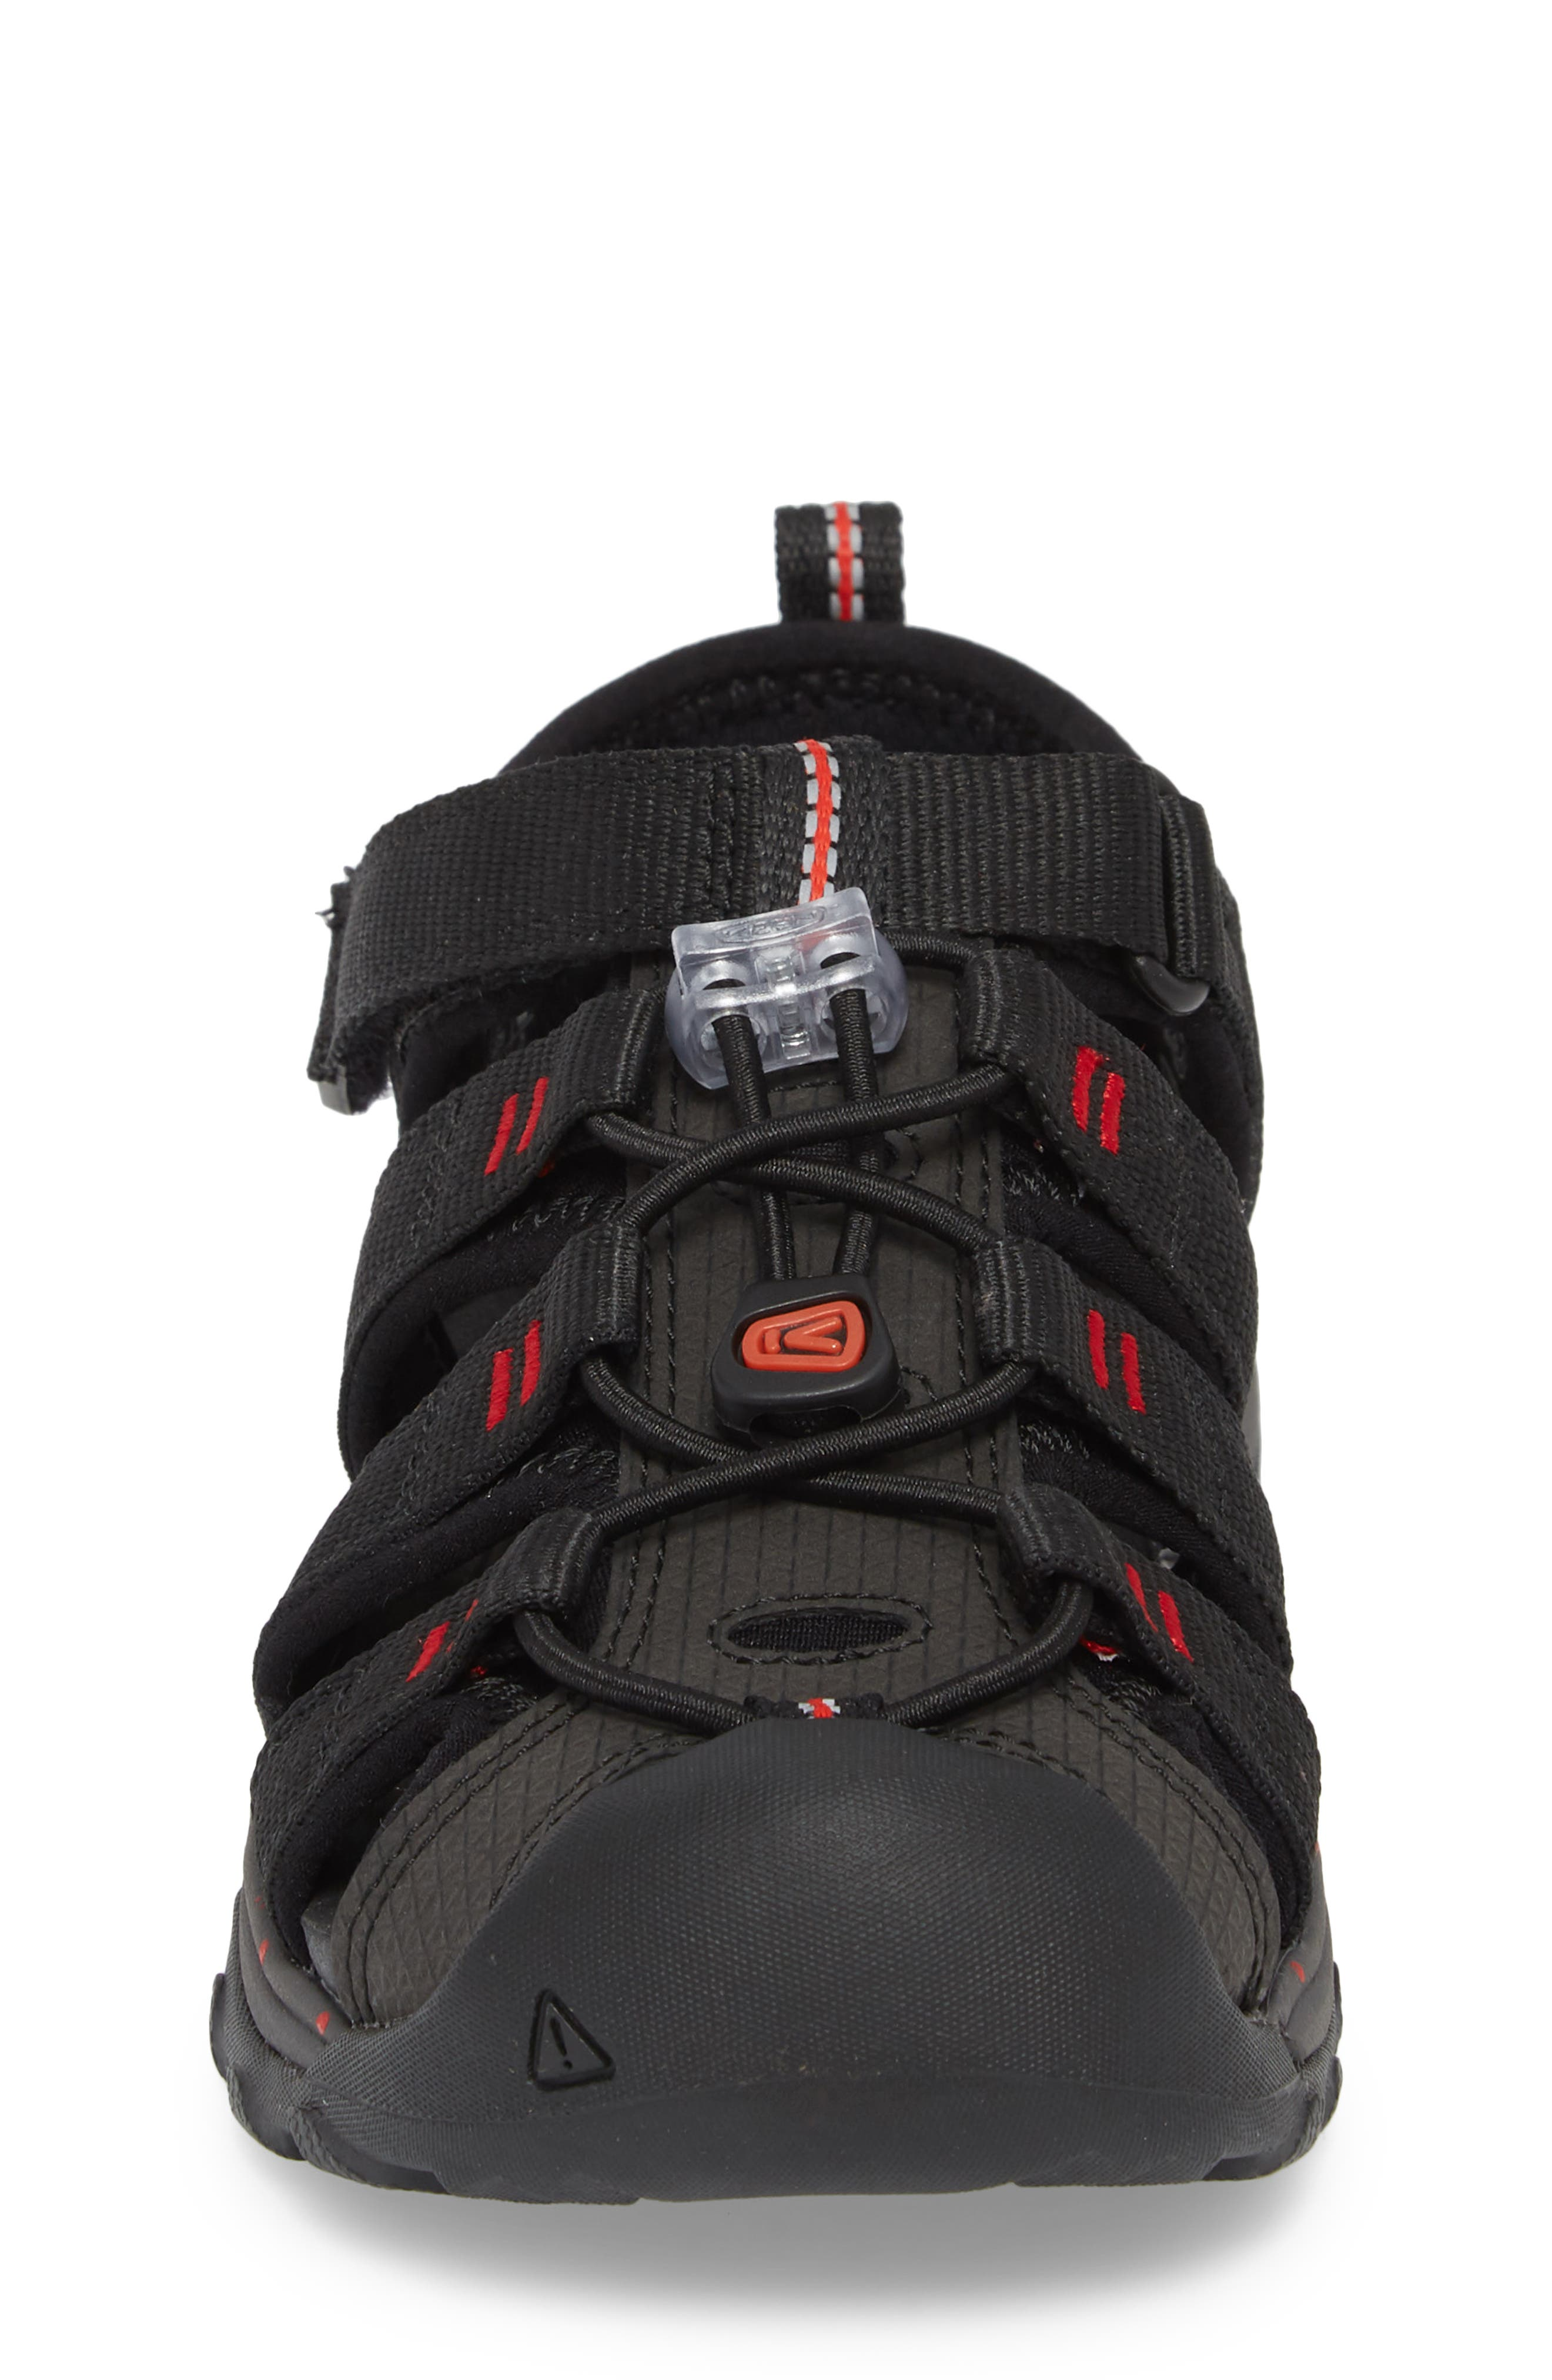 Newport Neo H2 Water Friendly Sandal,                             Alternate thumbnail 4, color,                             Black/ Fiery Red